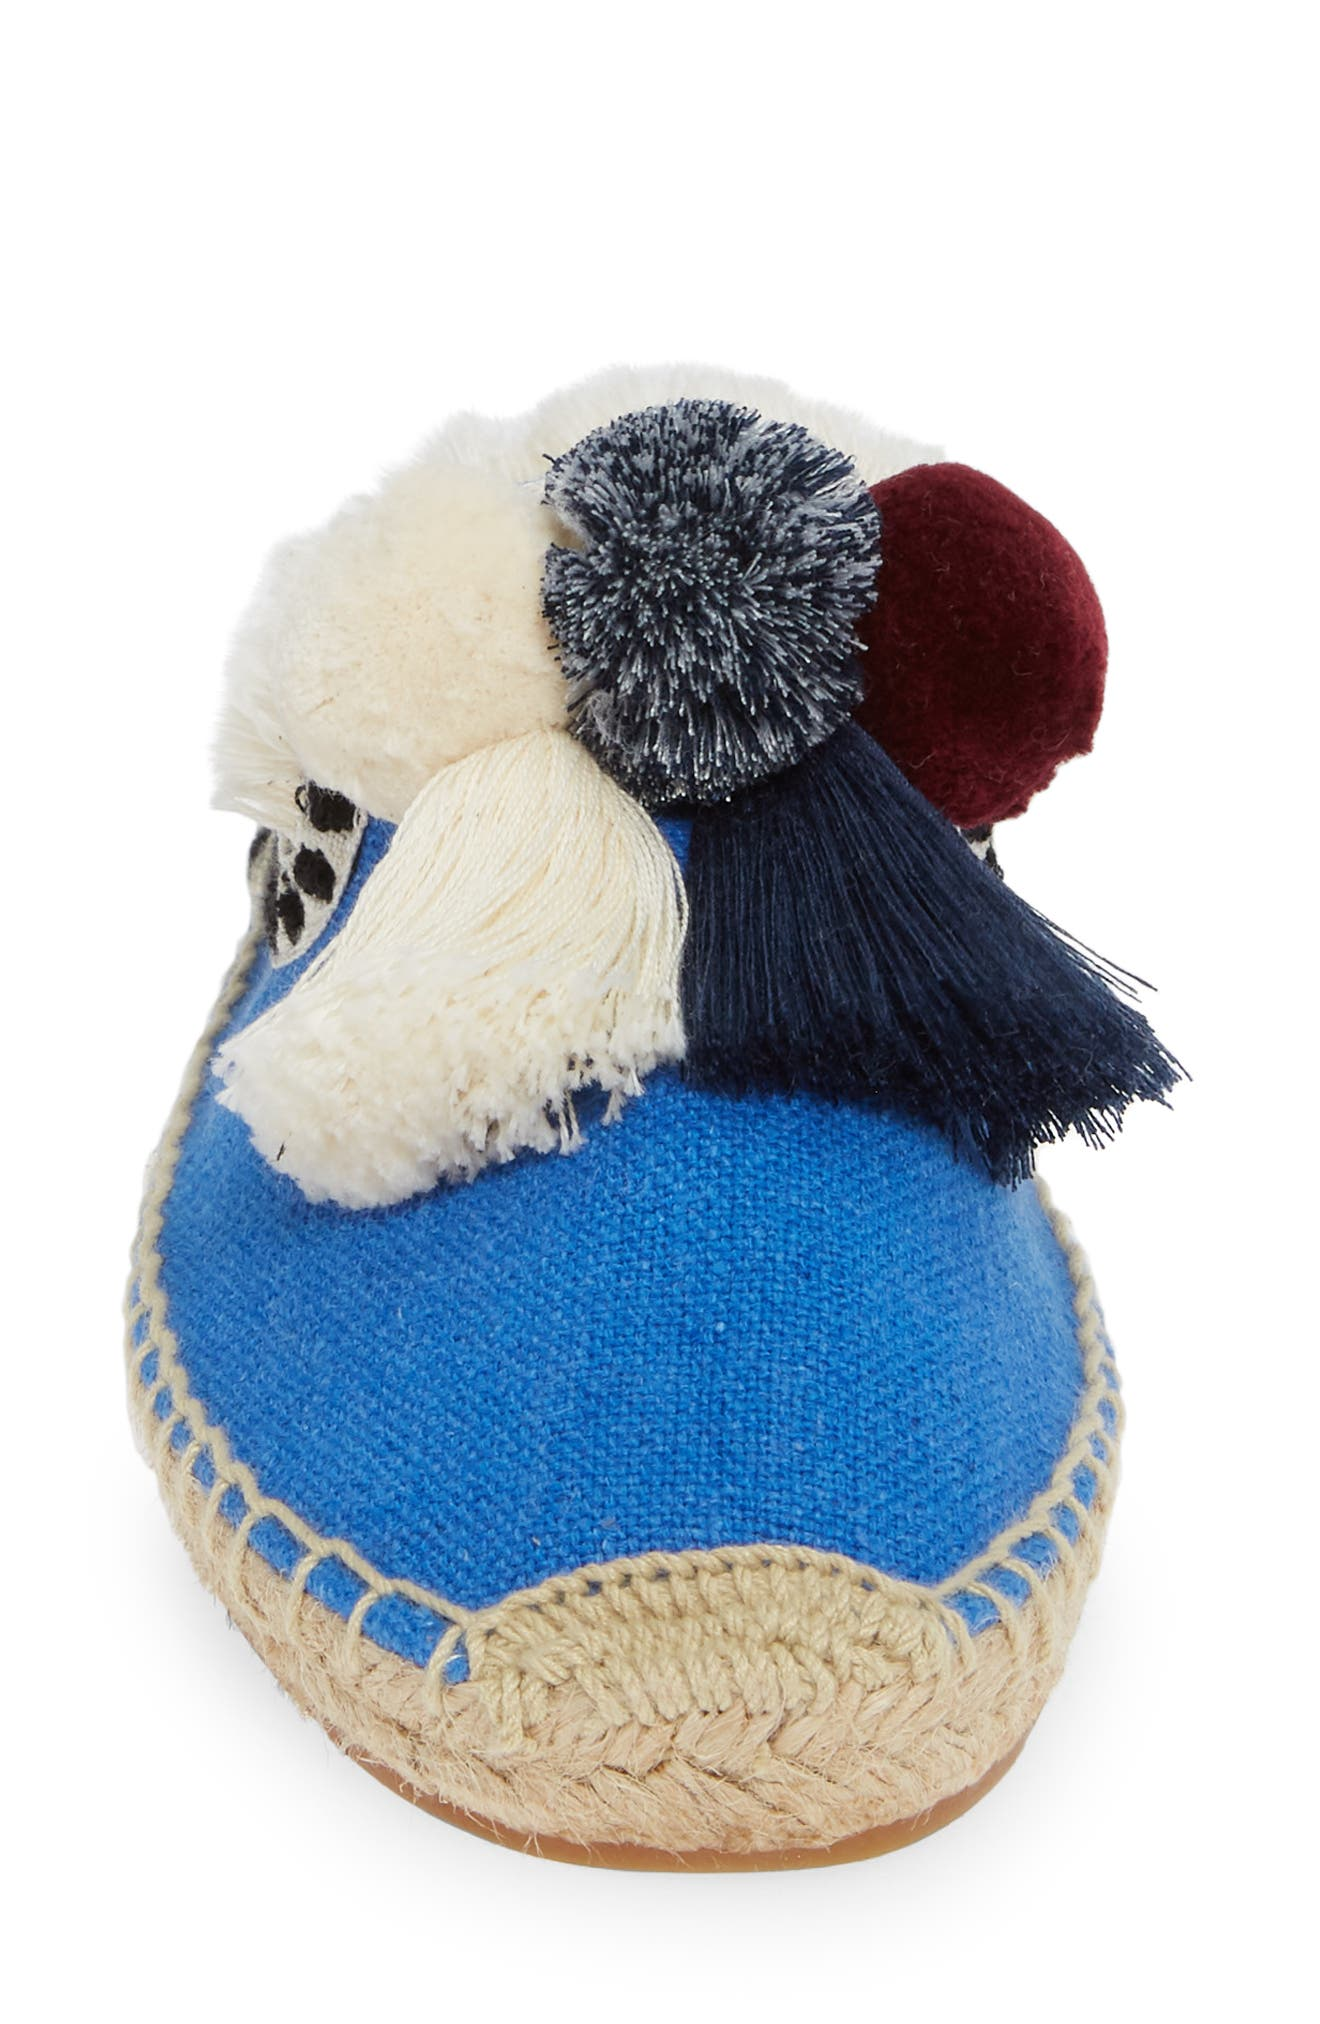 Pompom Espadrille Mule,                             Alternate thumbnail 4, color,                             MARLIN BLUE FABRIC